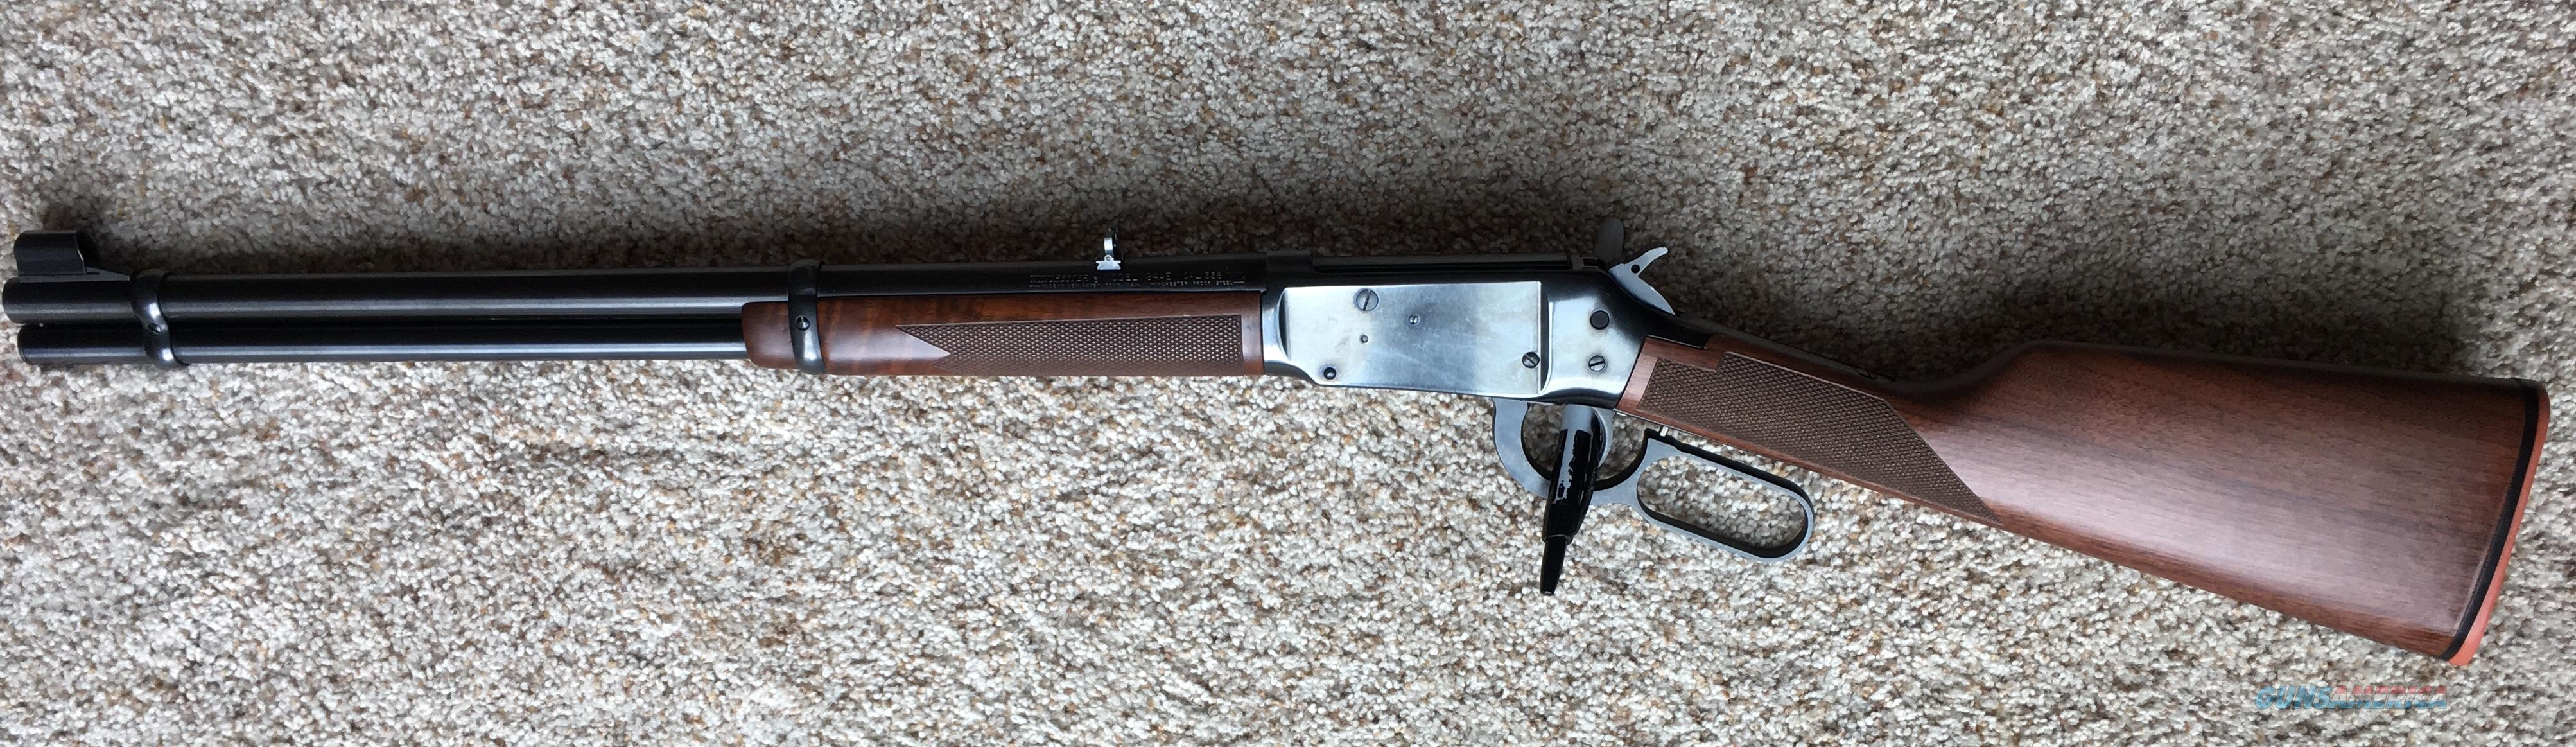 Winchester Big Bore Angle Eject XTR 356 1994 Unfired  Guns > Rifles > Winchester Rifles - Modern Lever > Model 94 > Post-64